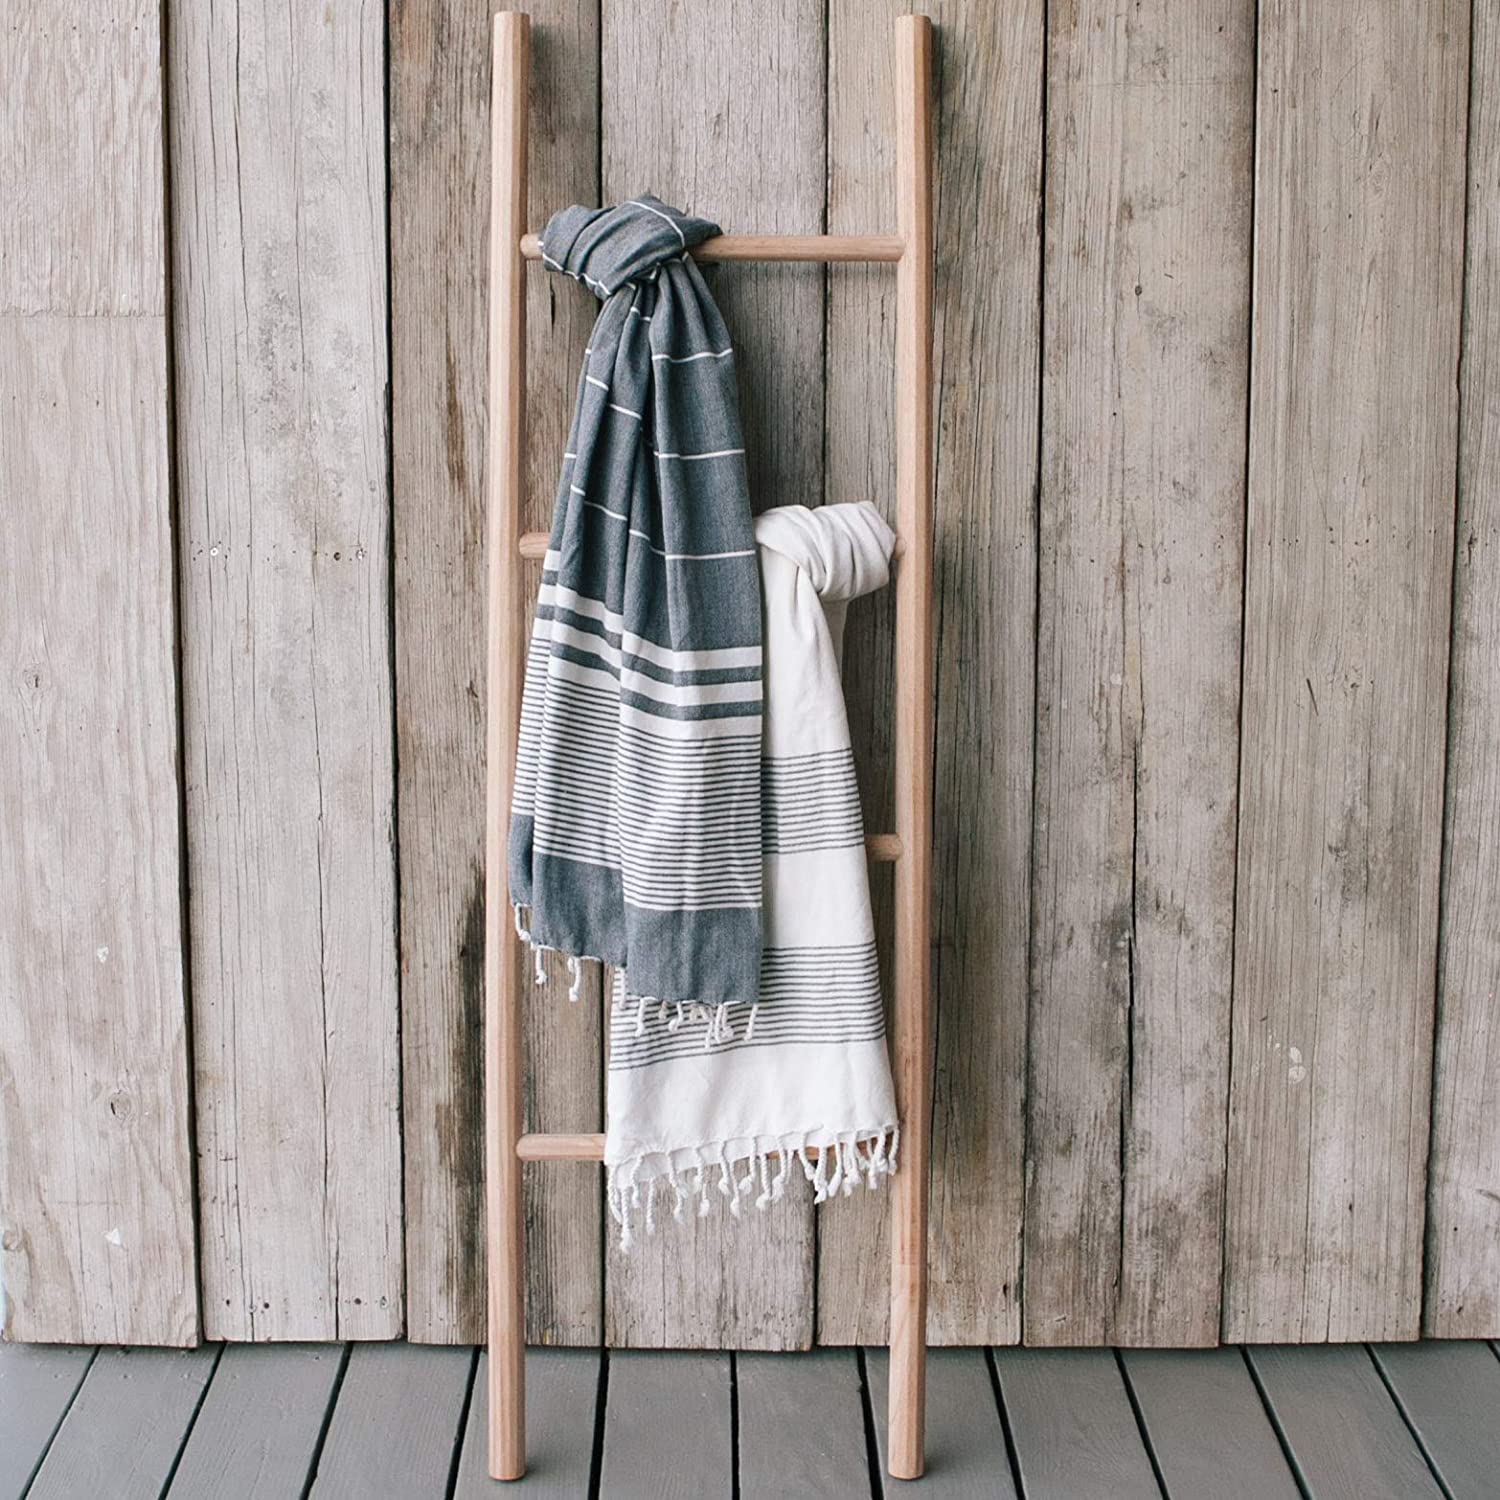 Sandstone & Sage Blanket-Ladder | Hand Made Natural 5ft Wooden Ladder Shelf | Farmhouse Decor to Use for Quilt Rack | Crafted from Sustainable Wood